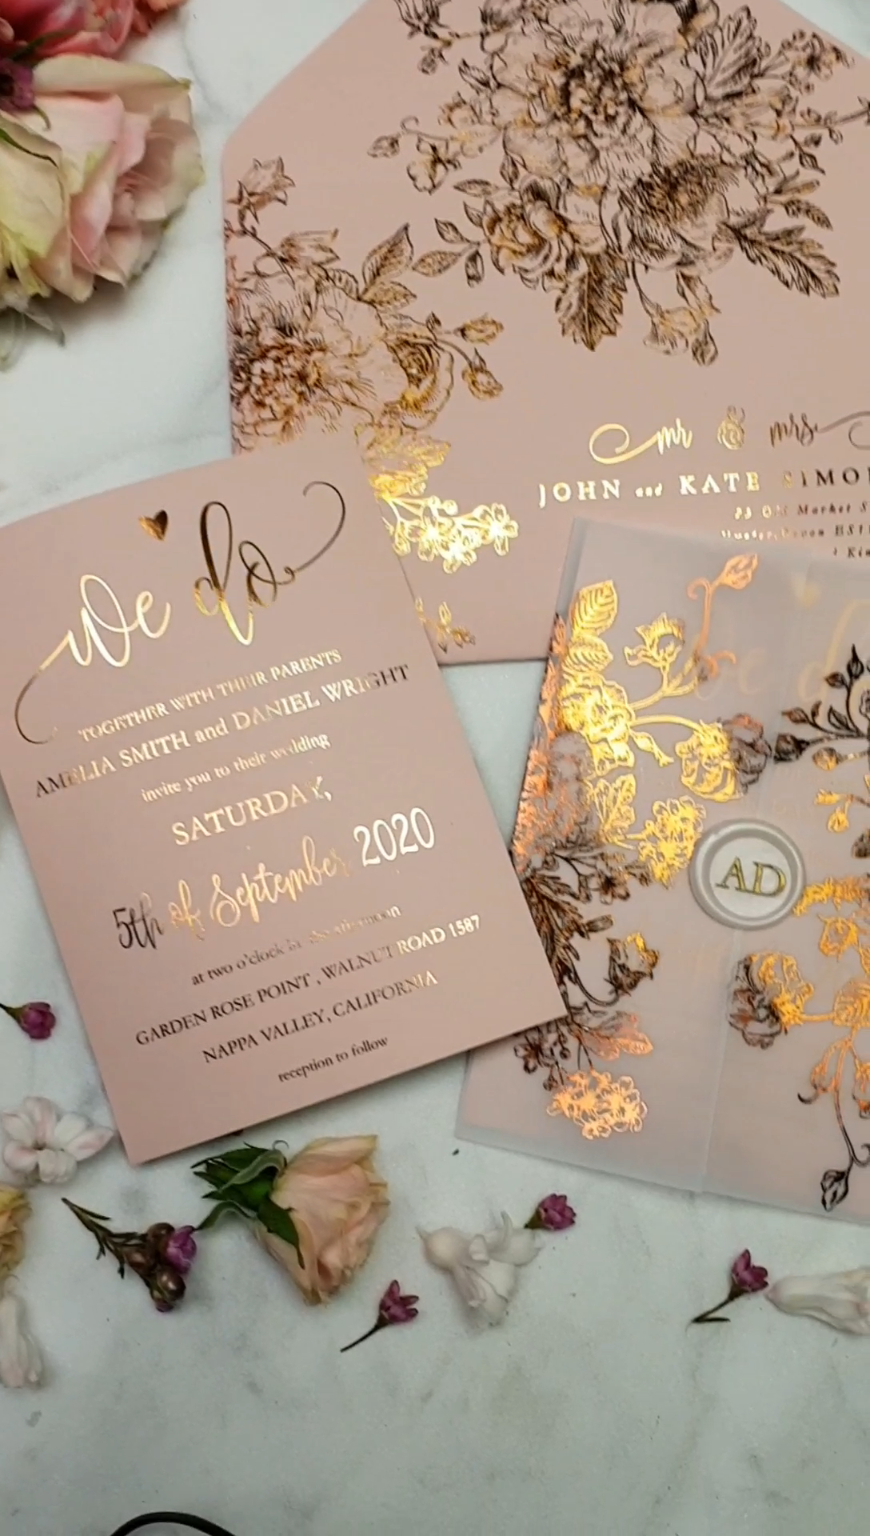 Ivory And Gold Wedding Invitation Template Printable Greenery Wedd Wedding Invitation Templates Electronic Wedding Invitations Gold Wedding Invitations Design